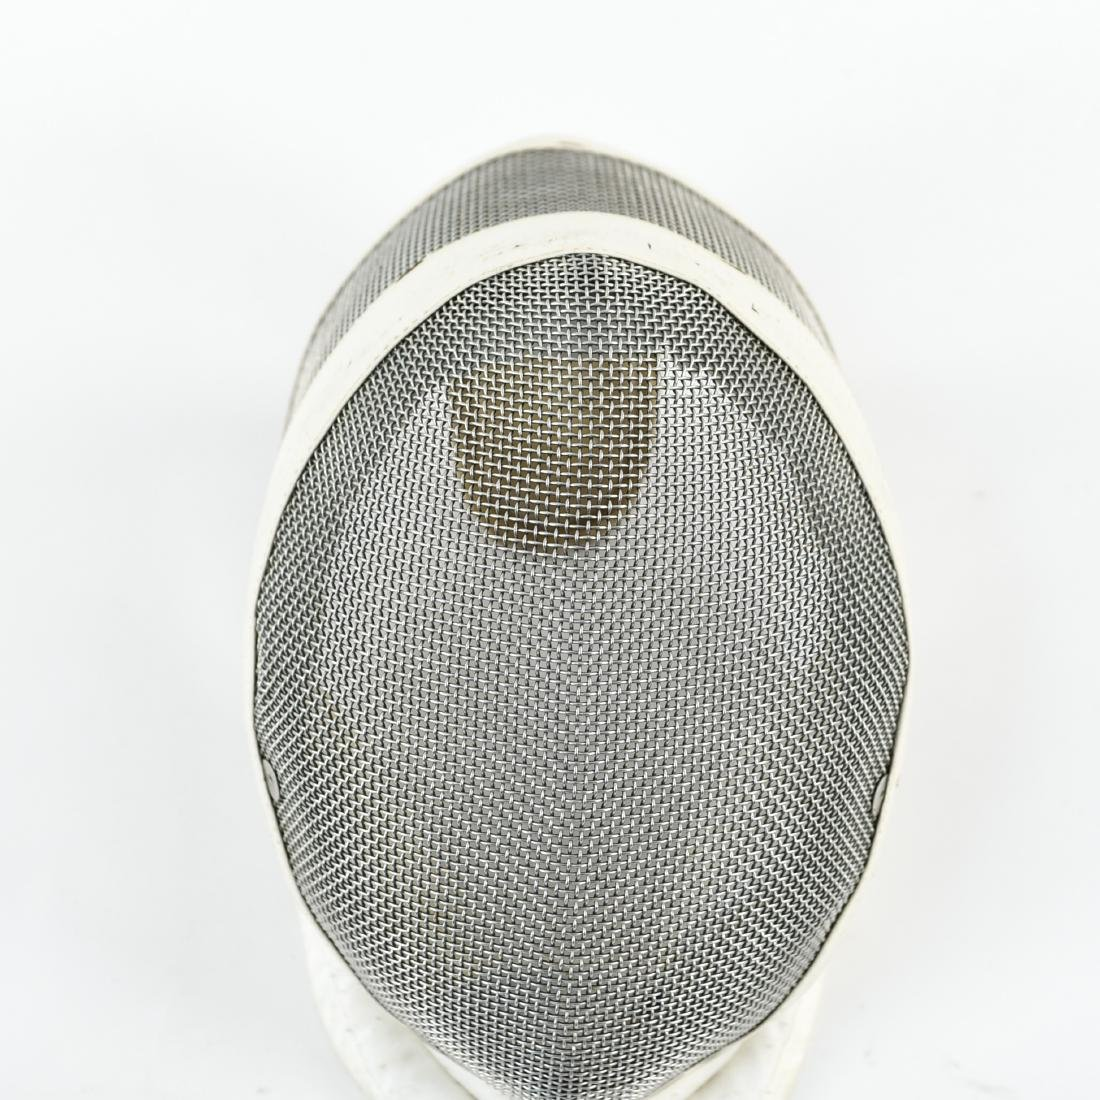 (2) FRENCH HANDLED FENCING FOILS AND MASK - 3